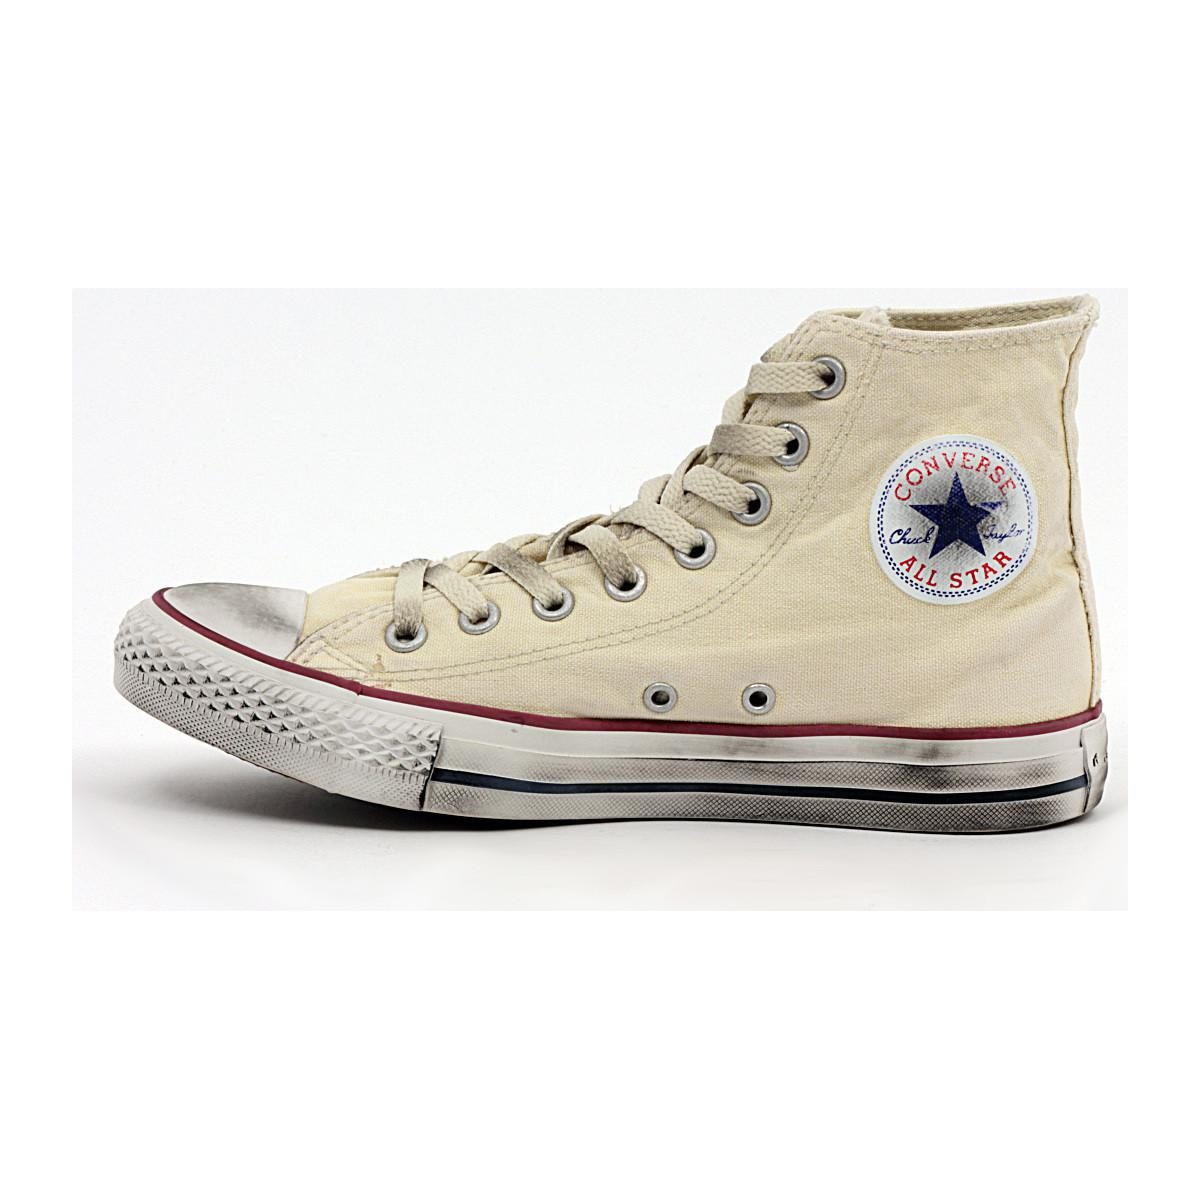 Converse All Star Hi White Smoke Limited Women's Shoes (high-top Trainers) In Multicolour